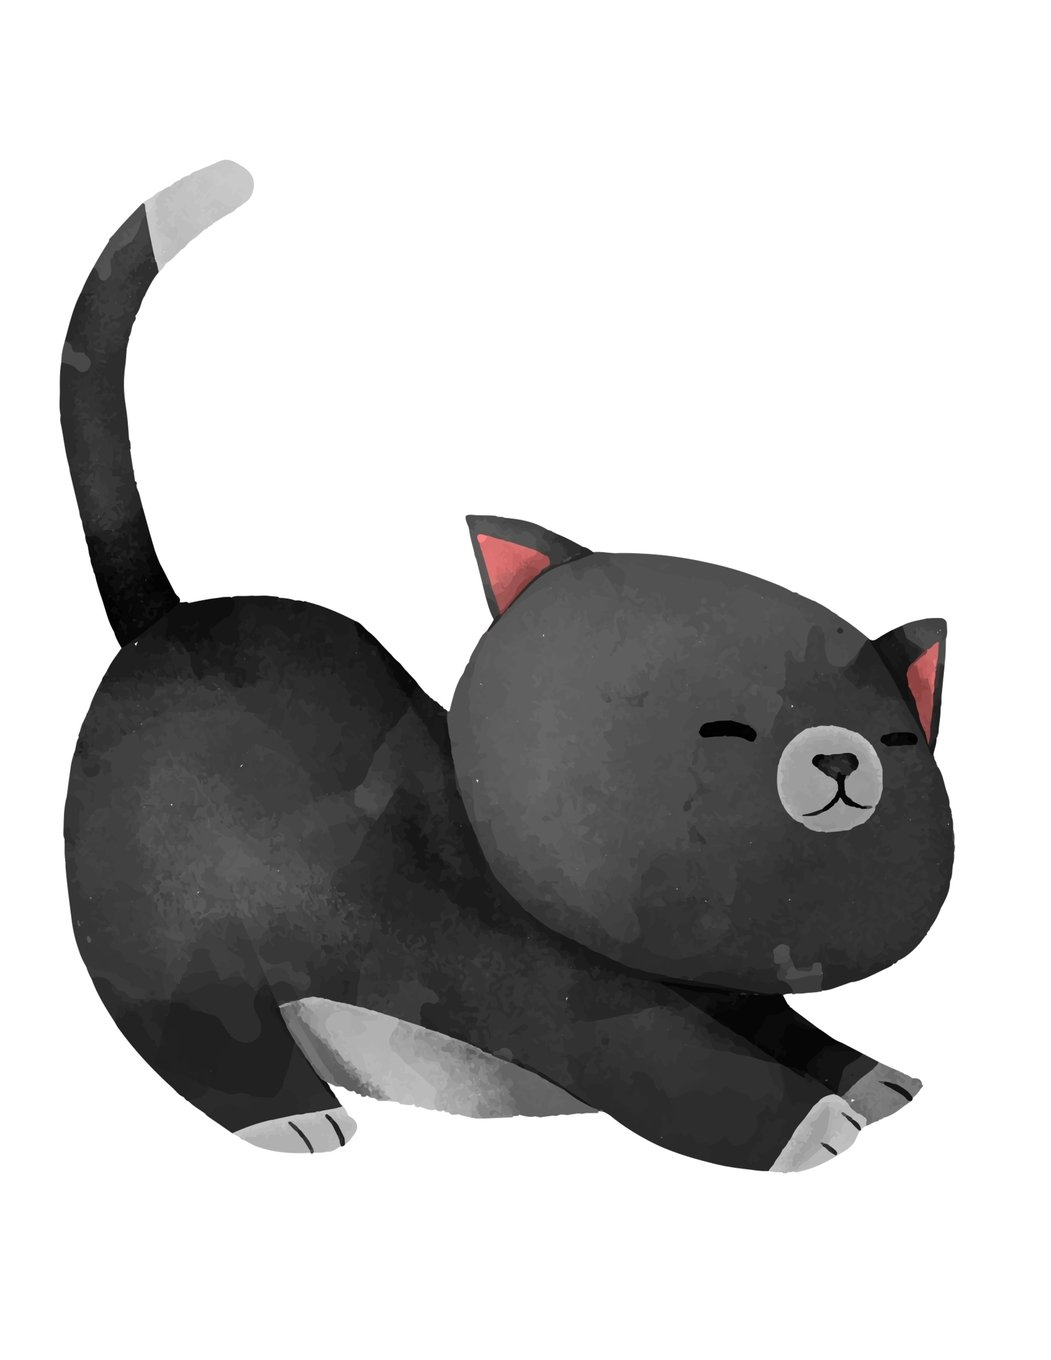 Buy Notebook Cute Black Cat Notebook For Kids Large Size Letter Wide Ruled Volume 2 Cute Kittens Book Online At Low Prices In India Notebook Cute Black Cat Notebook For